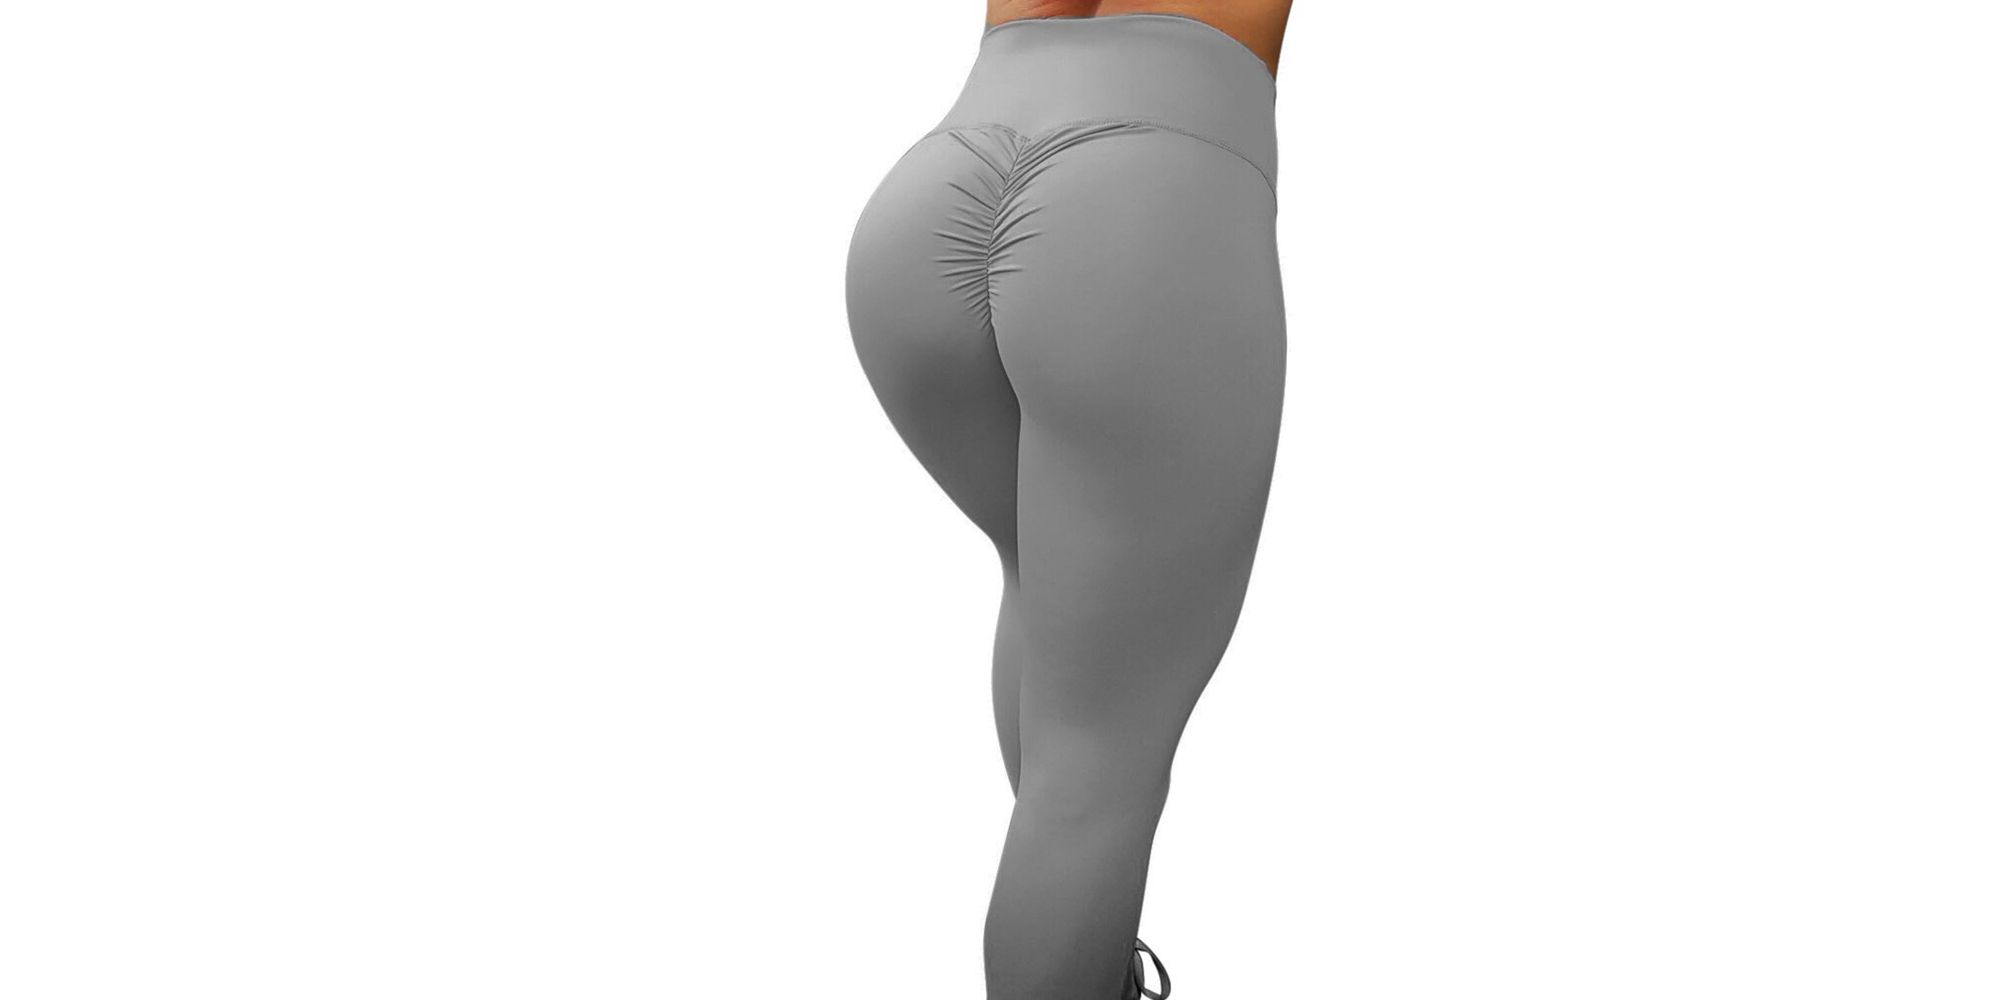 6 Scrunch Butt Leggings That'll Make Your Ass Look Amazing